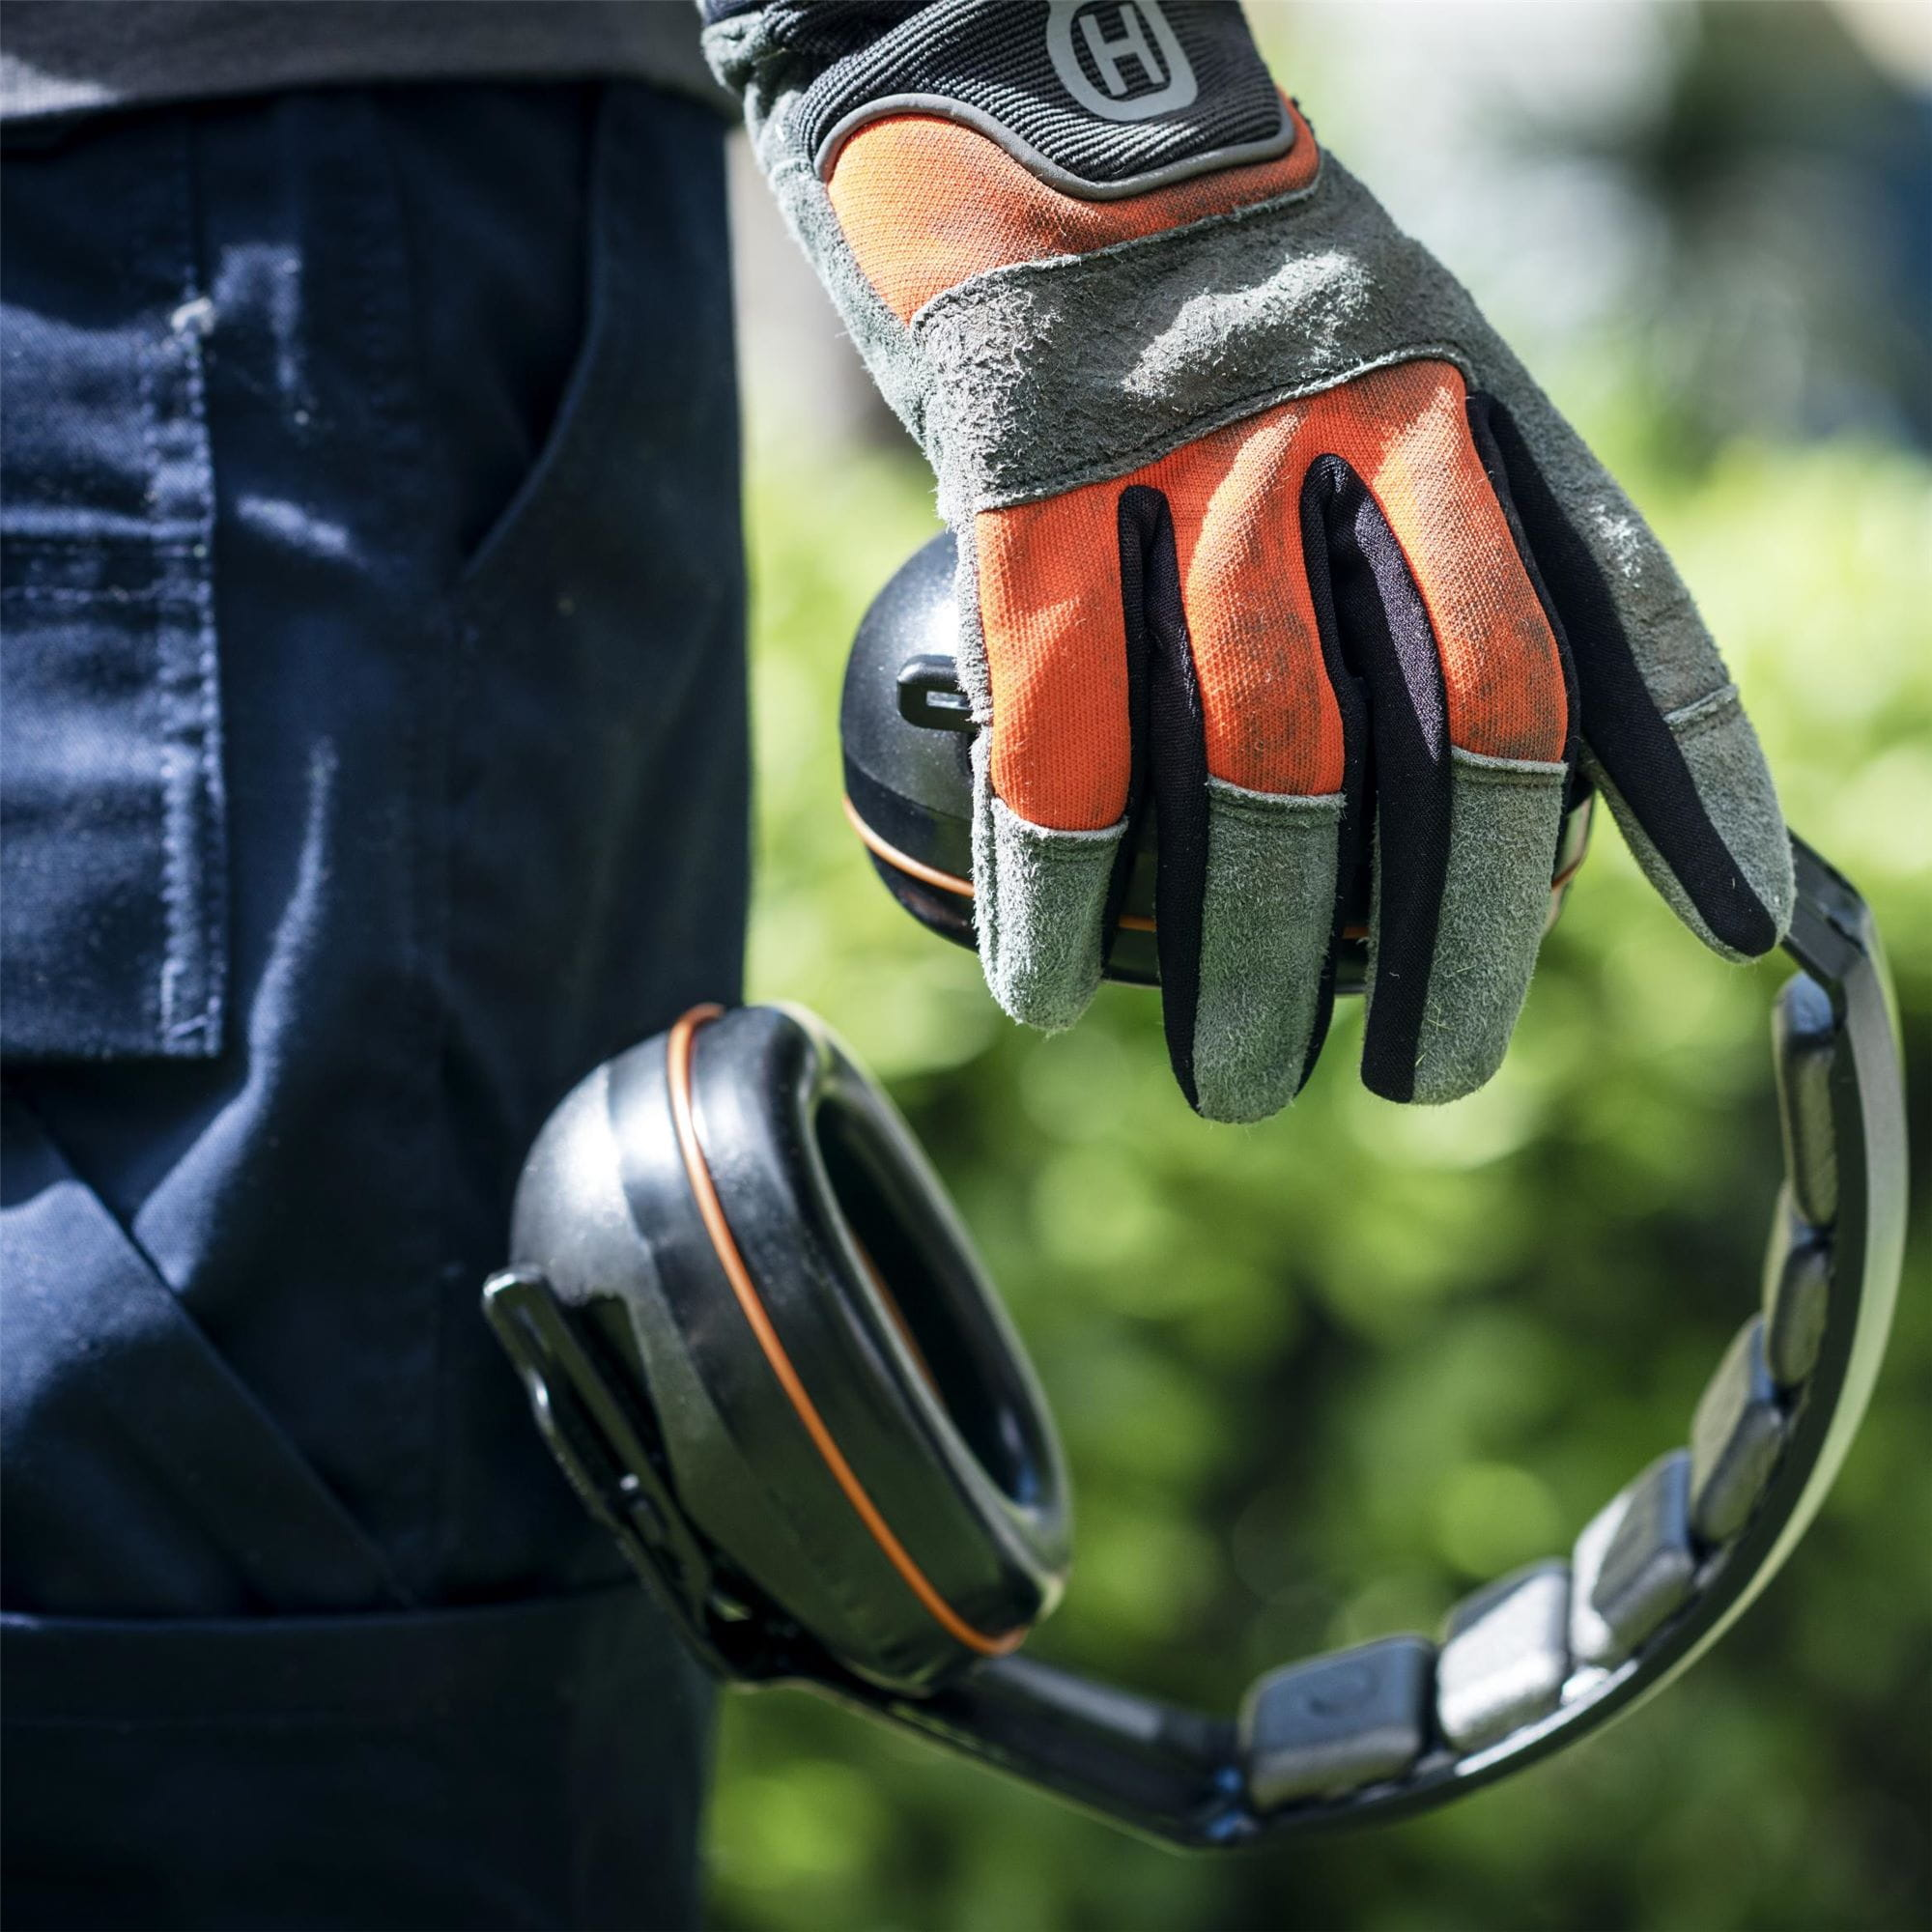 Gloves and hearing protection